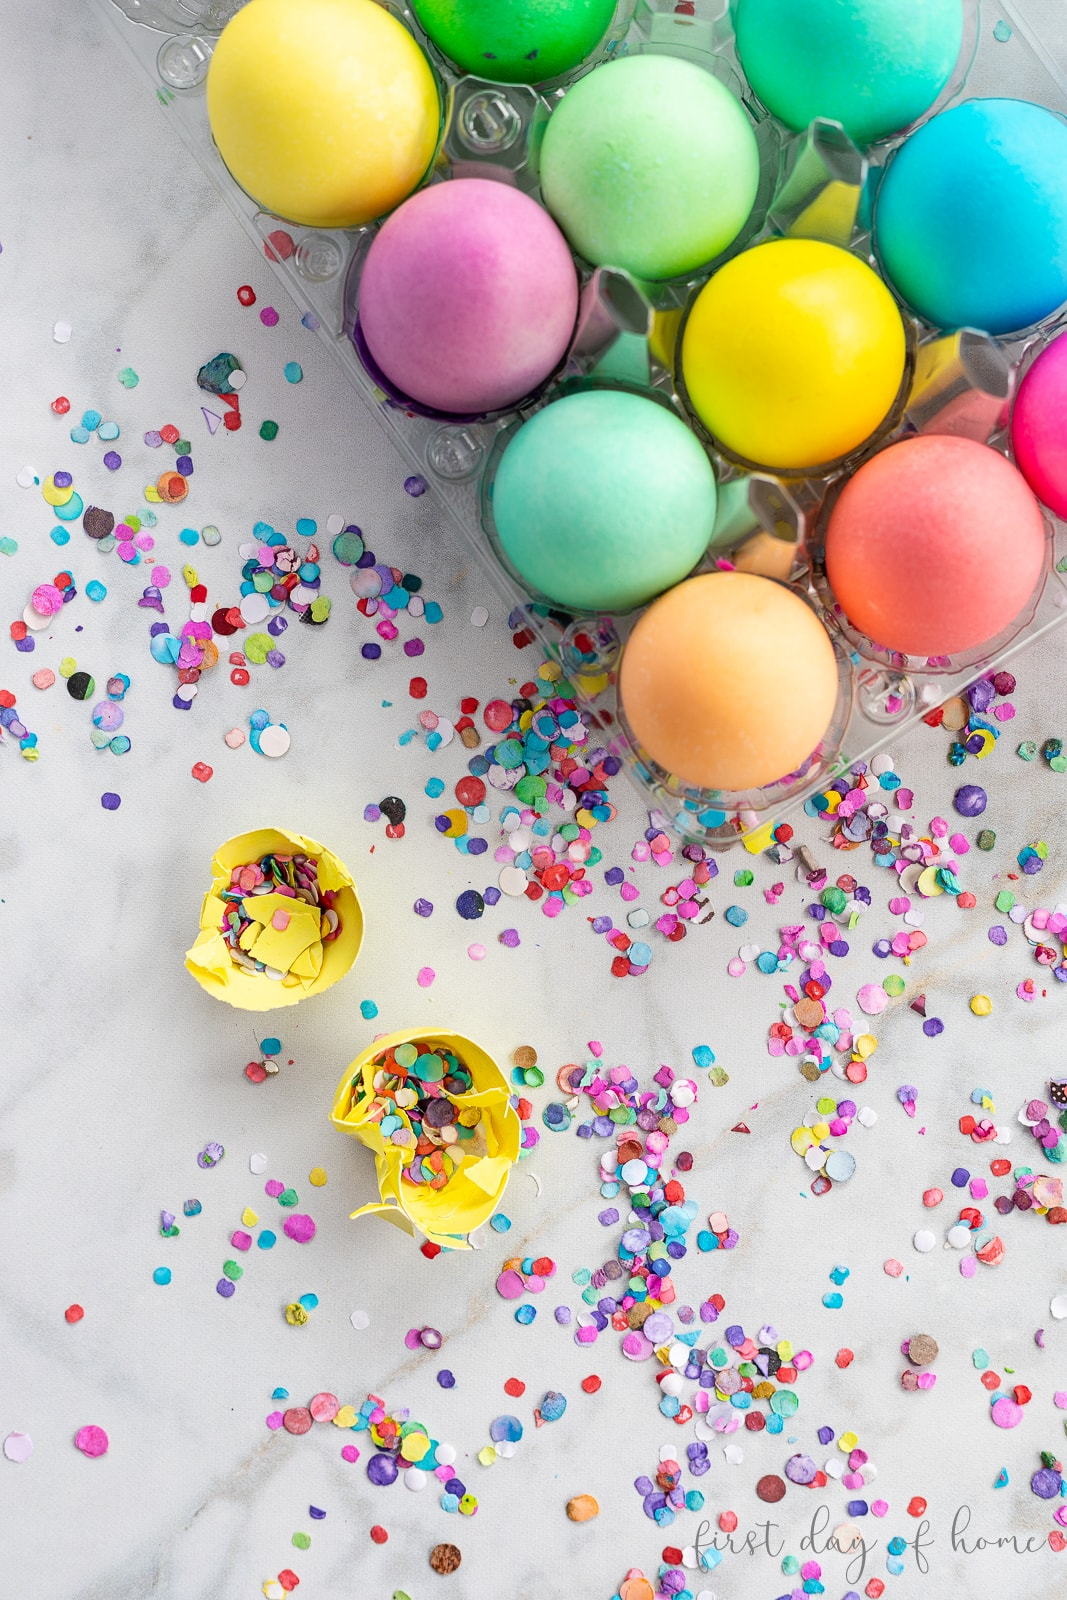 Colored Easter eggs with one egg cracked open to reveal confetti